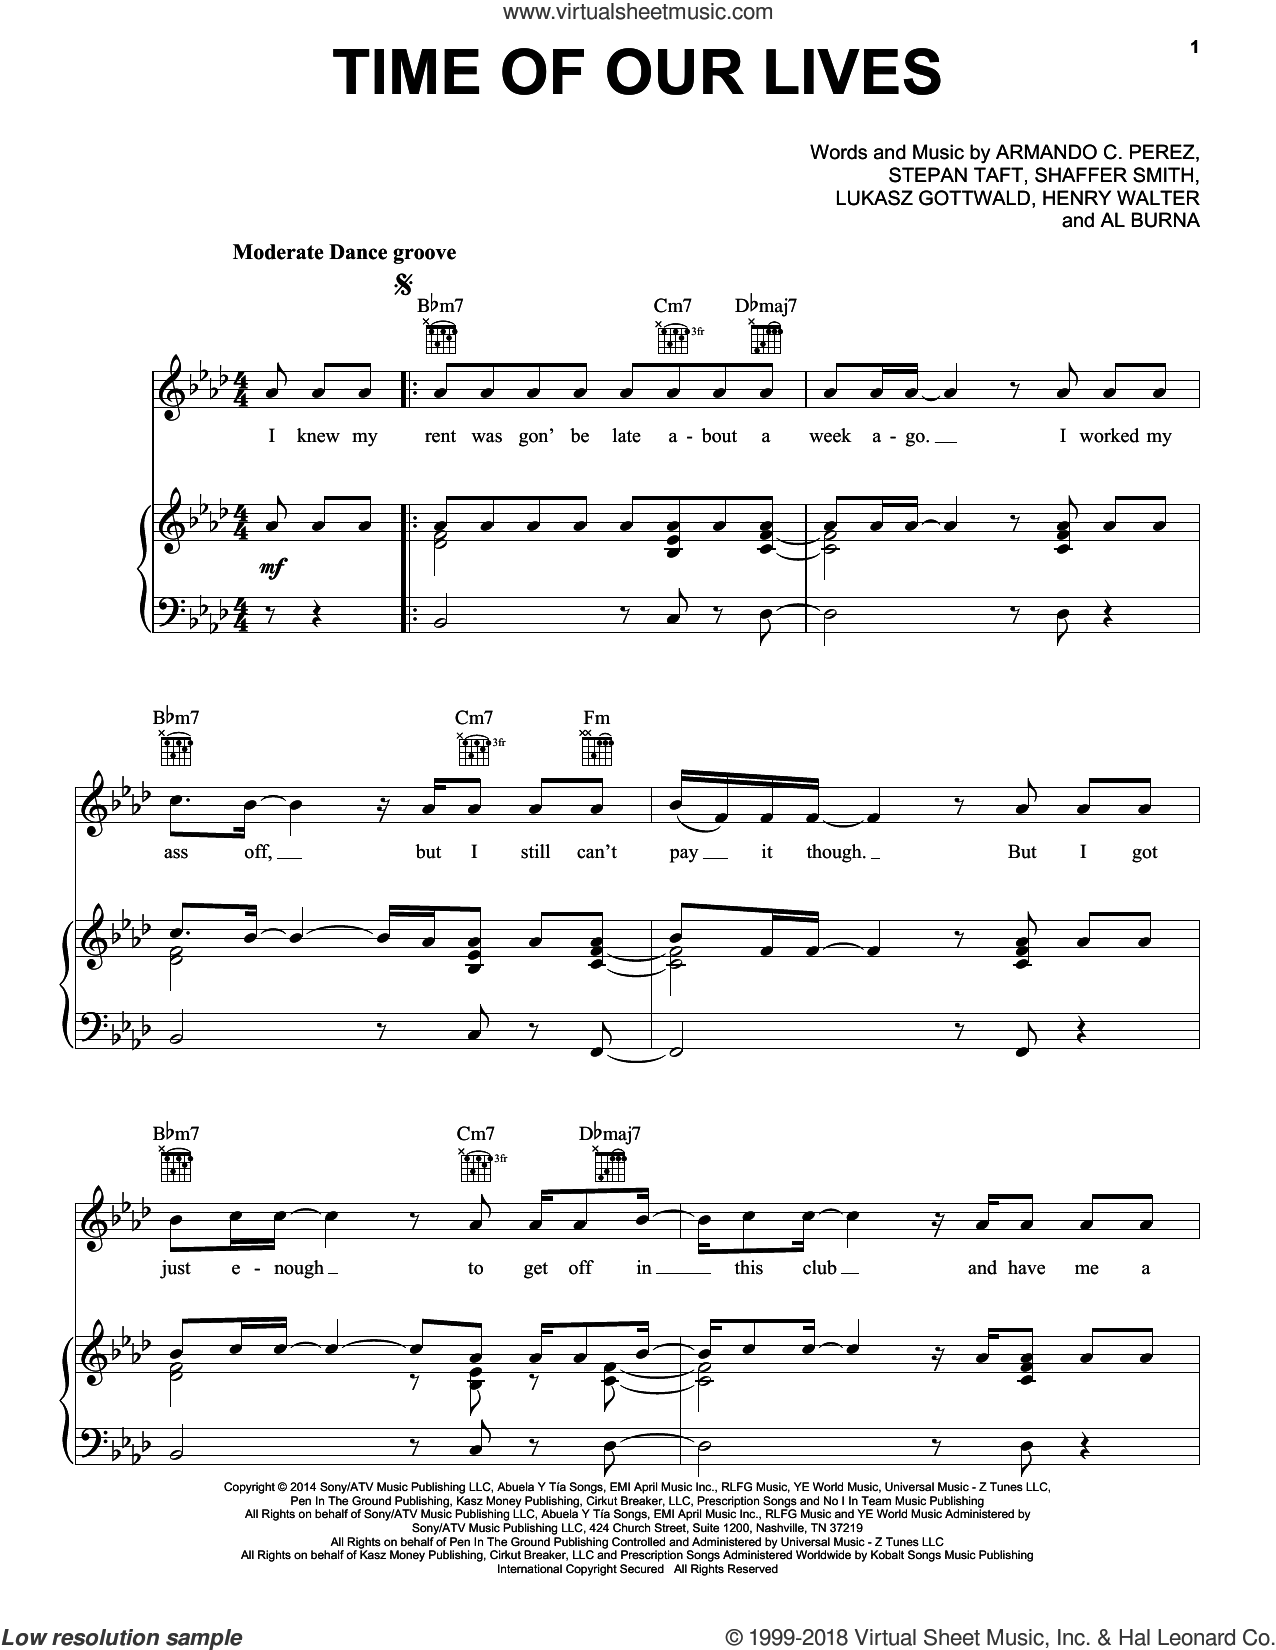 Time Of Our Lives sheet music for voice, piano or guitar by Stepan Taft, Ne-Yo, Pitbull, Henry Walter, Lukasz Gottwald and Shaffer Smith. Score Image Preview.